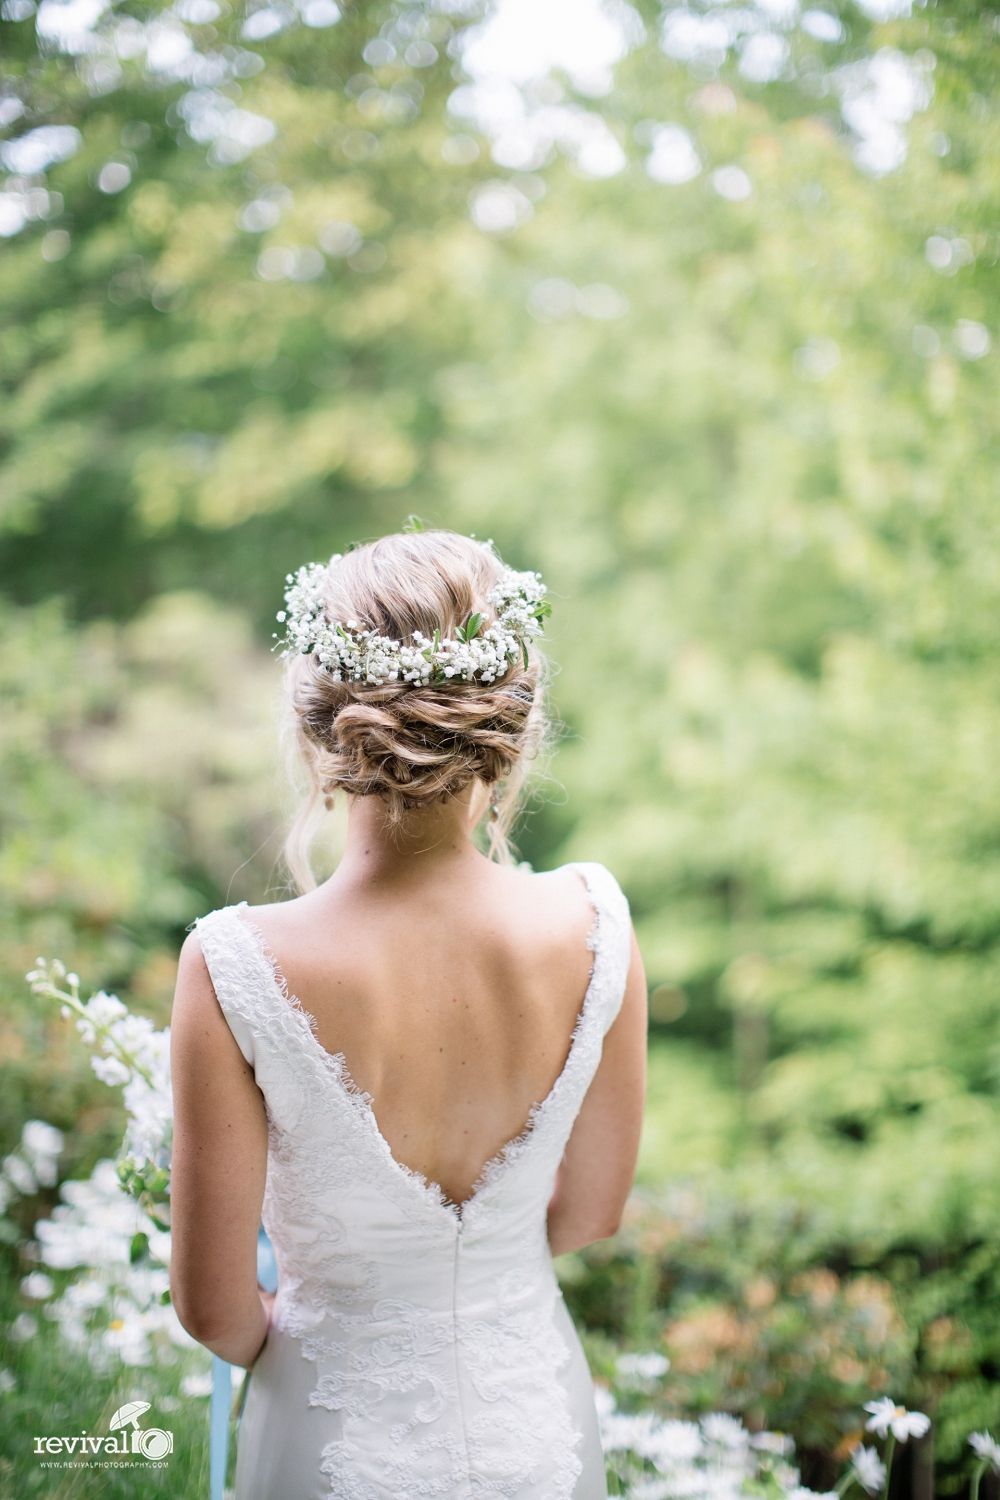 Revival Photography Flowers In Hair Hair Photography Bridal Hair And Makeup